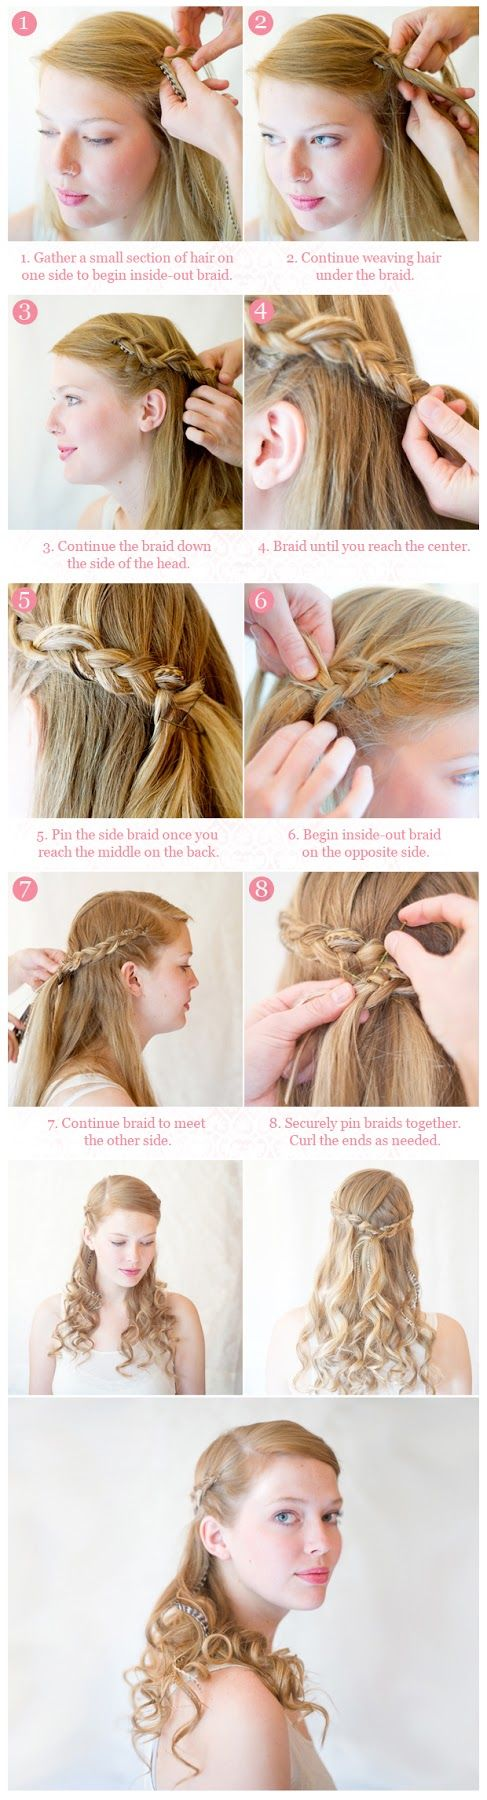 Braids for Curly Hair